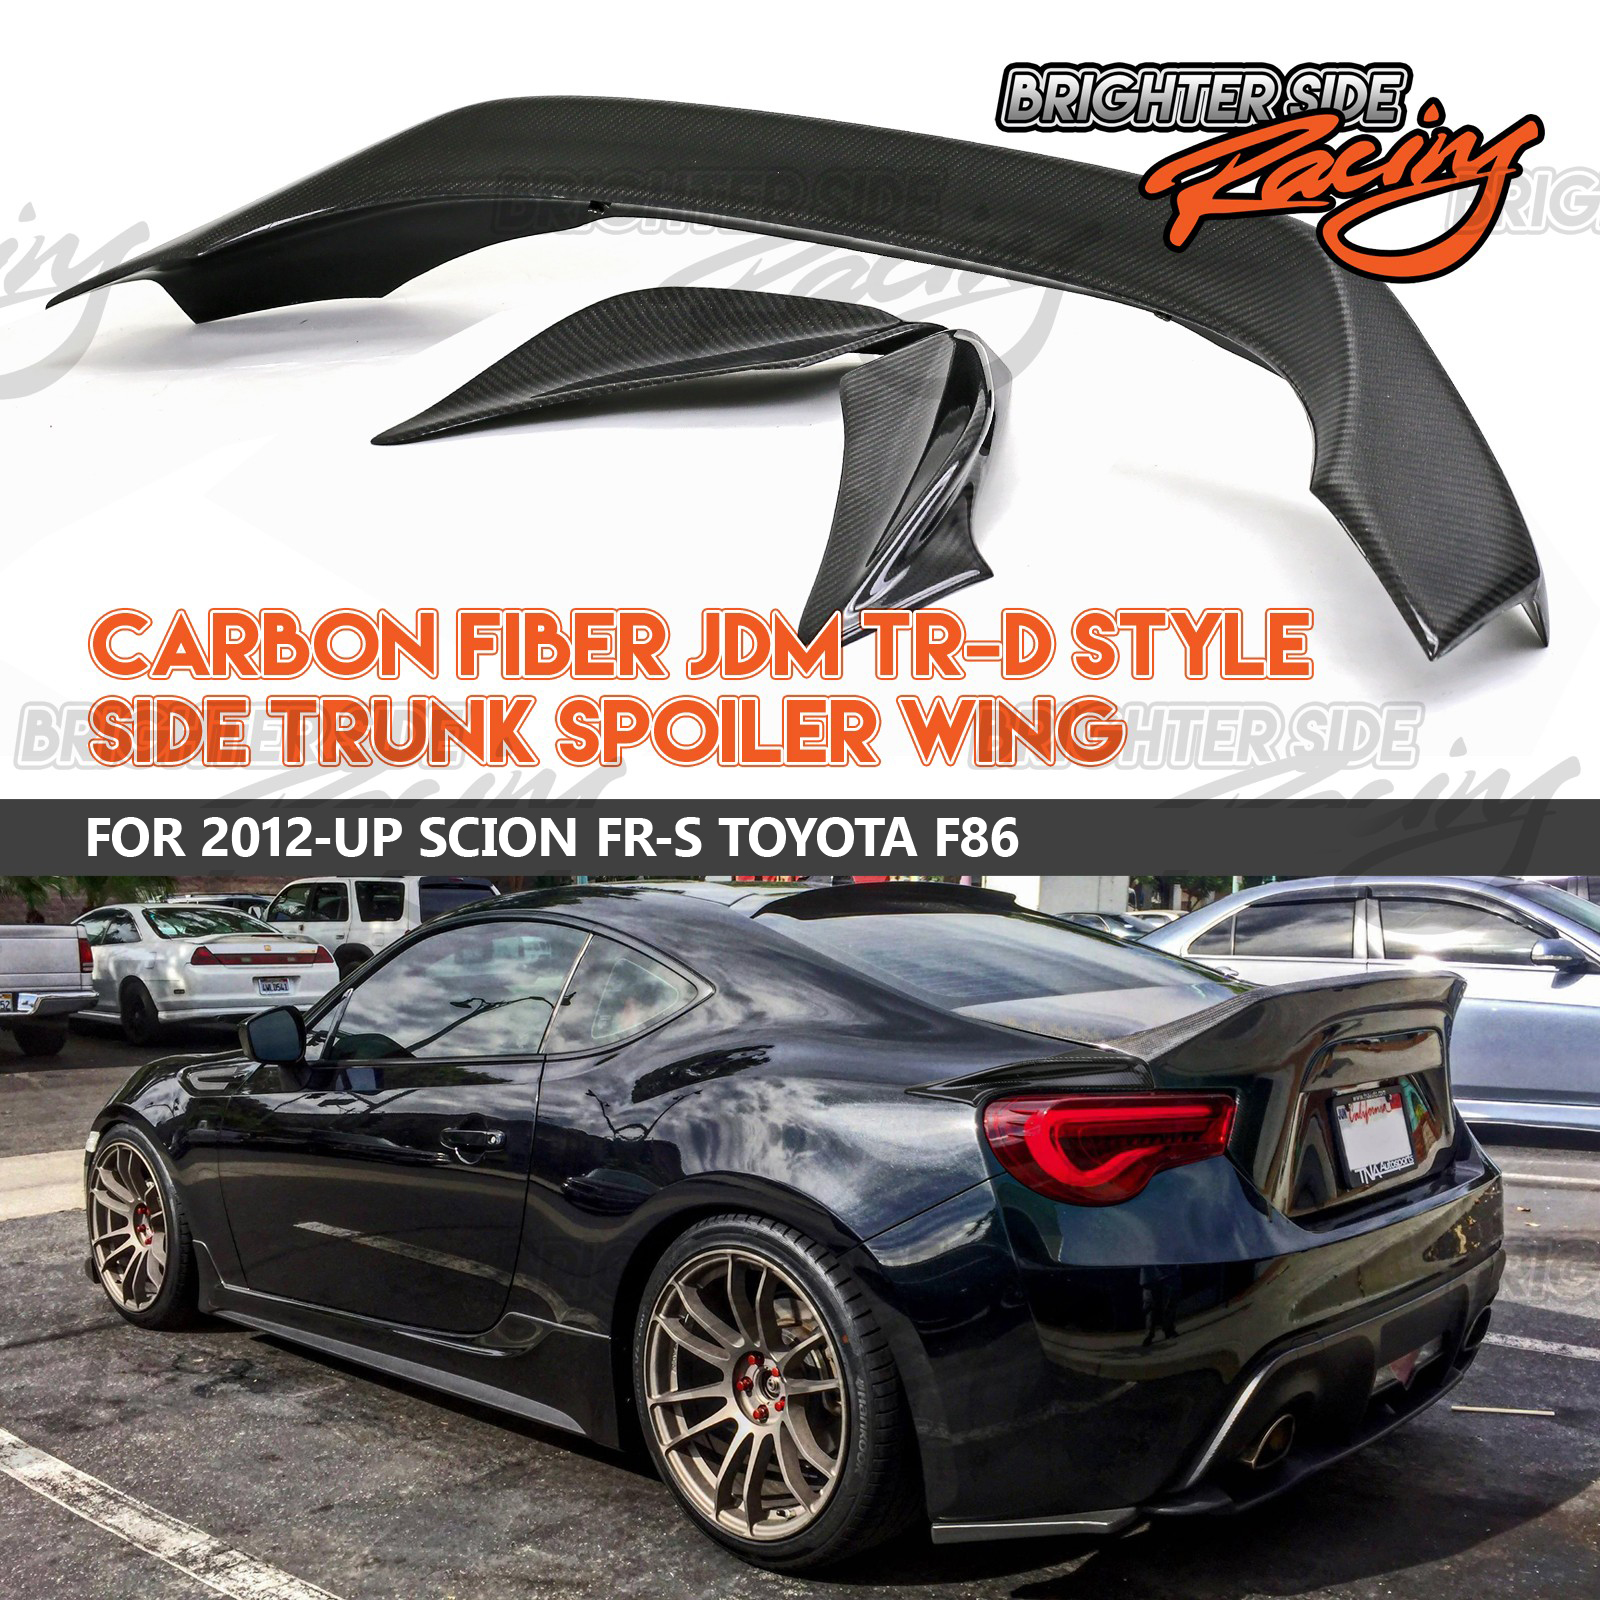 TRD STYLE 3PC CARBON FIBER DUCKTAIL REAR TRUNK SPOILER WING FOR 13